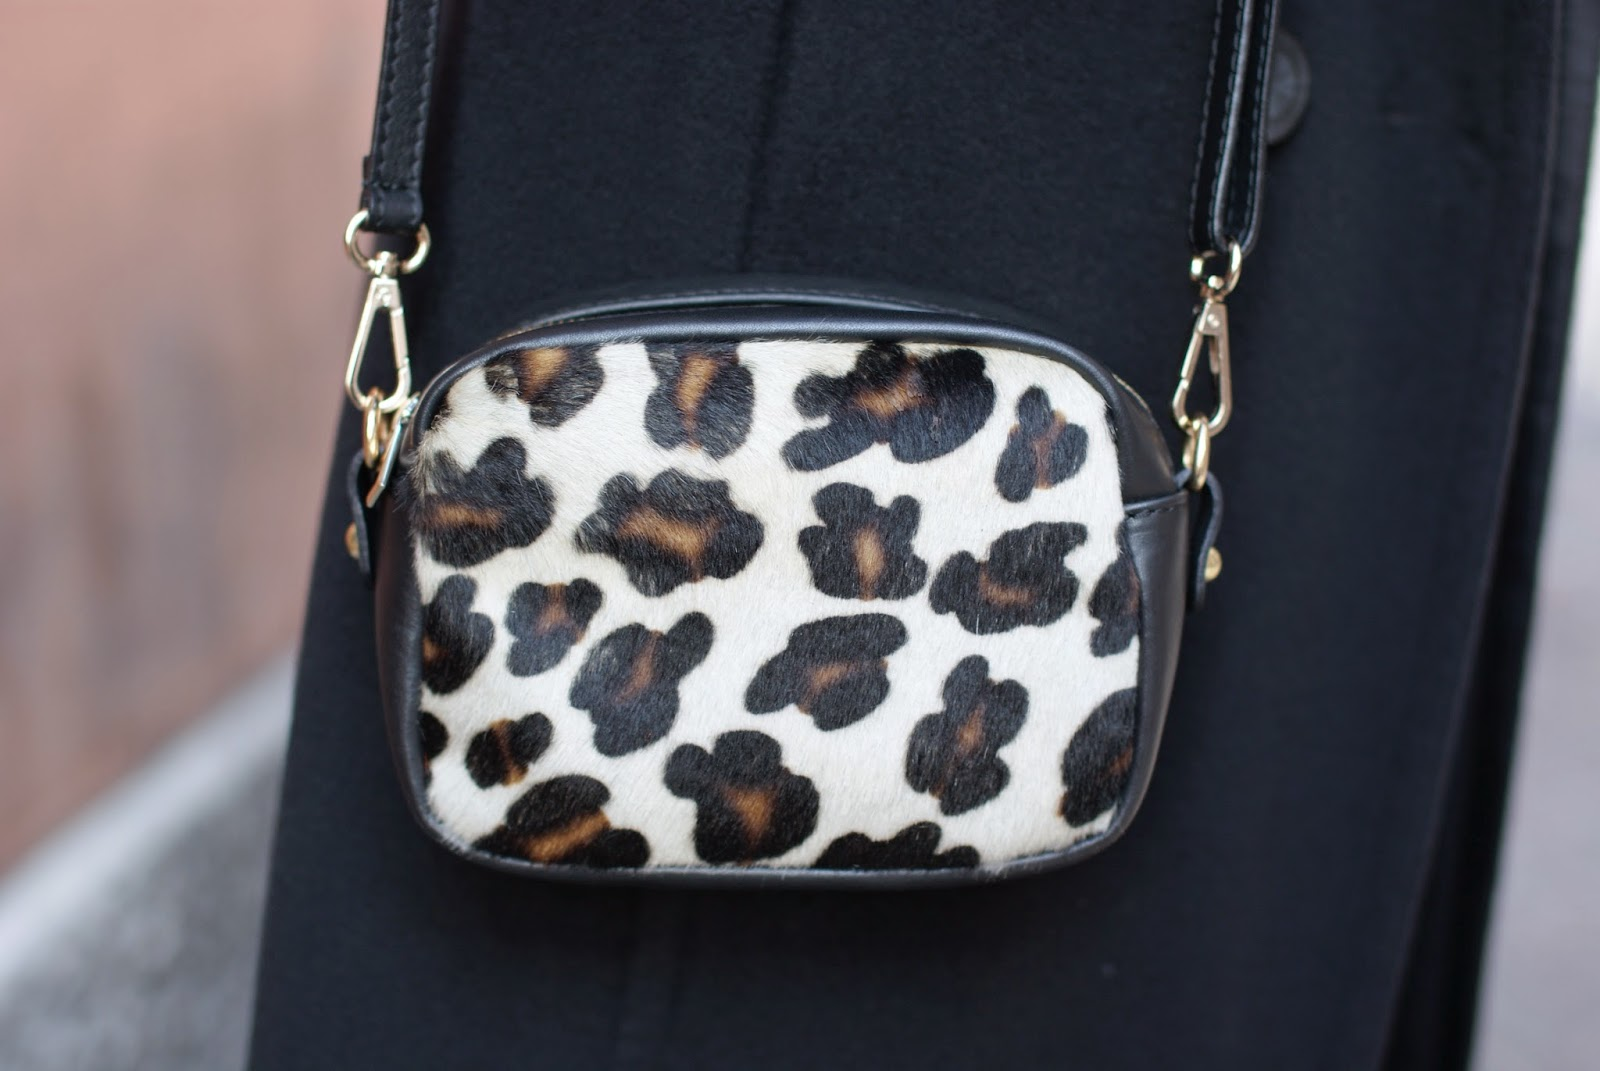 Sofia borse candy pochette, leopard pony hair mini bag, Fashion and Cookies, fashion blogger